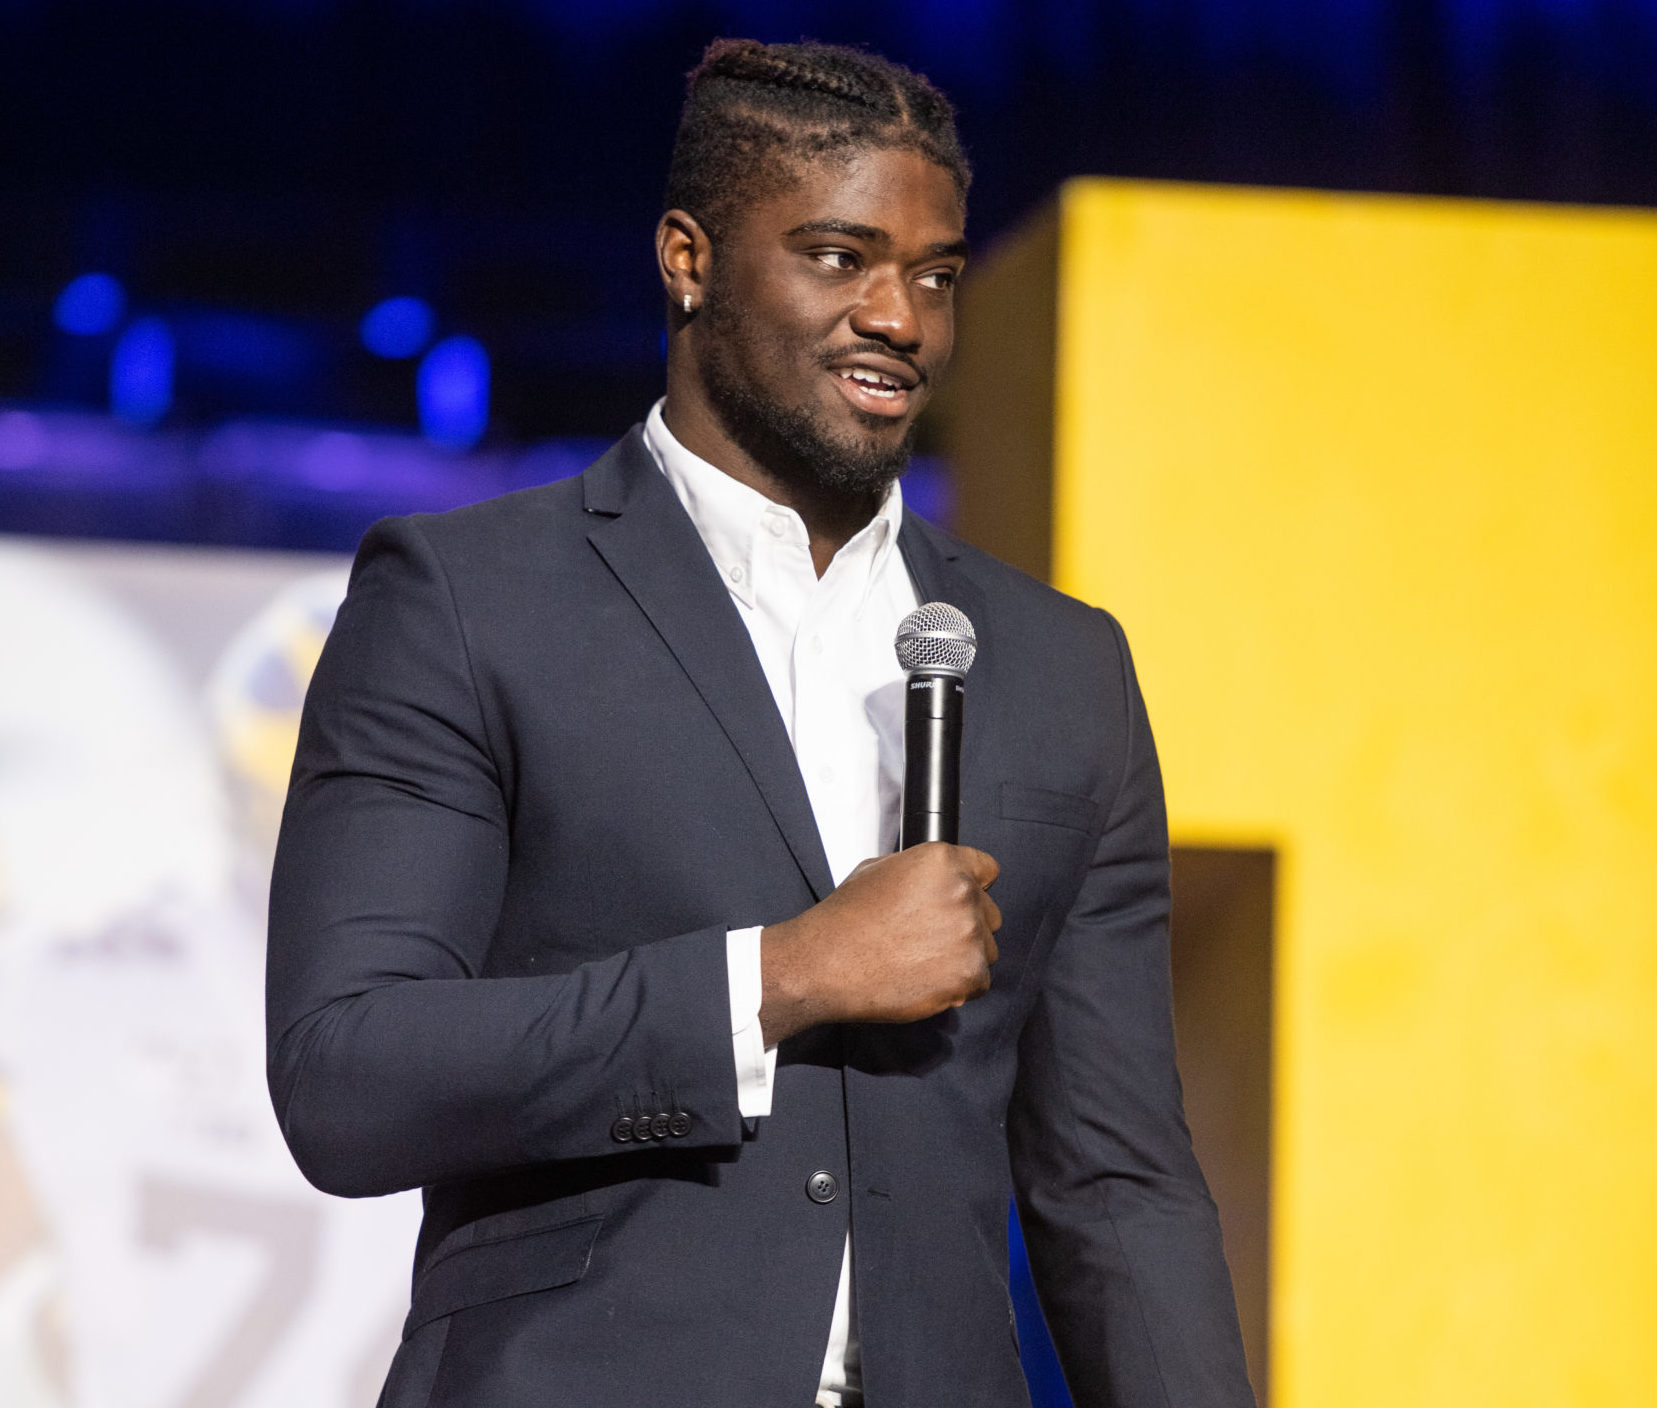 Michigan Football's annual Shemmys award ceremony at Crisler Center in Ann Arbor, Mich. on Dec. 15, 2019. David Ojabo, of Westhill, on stage.